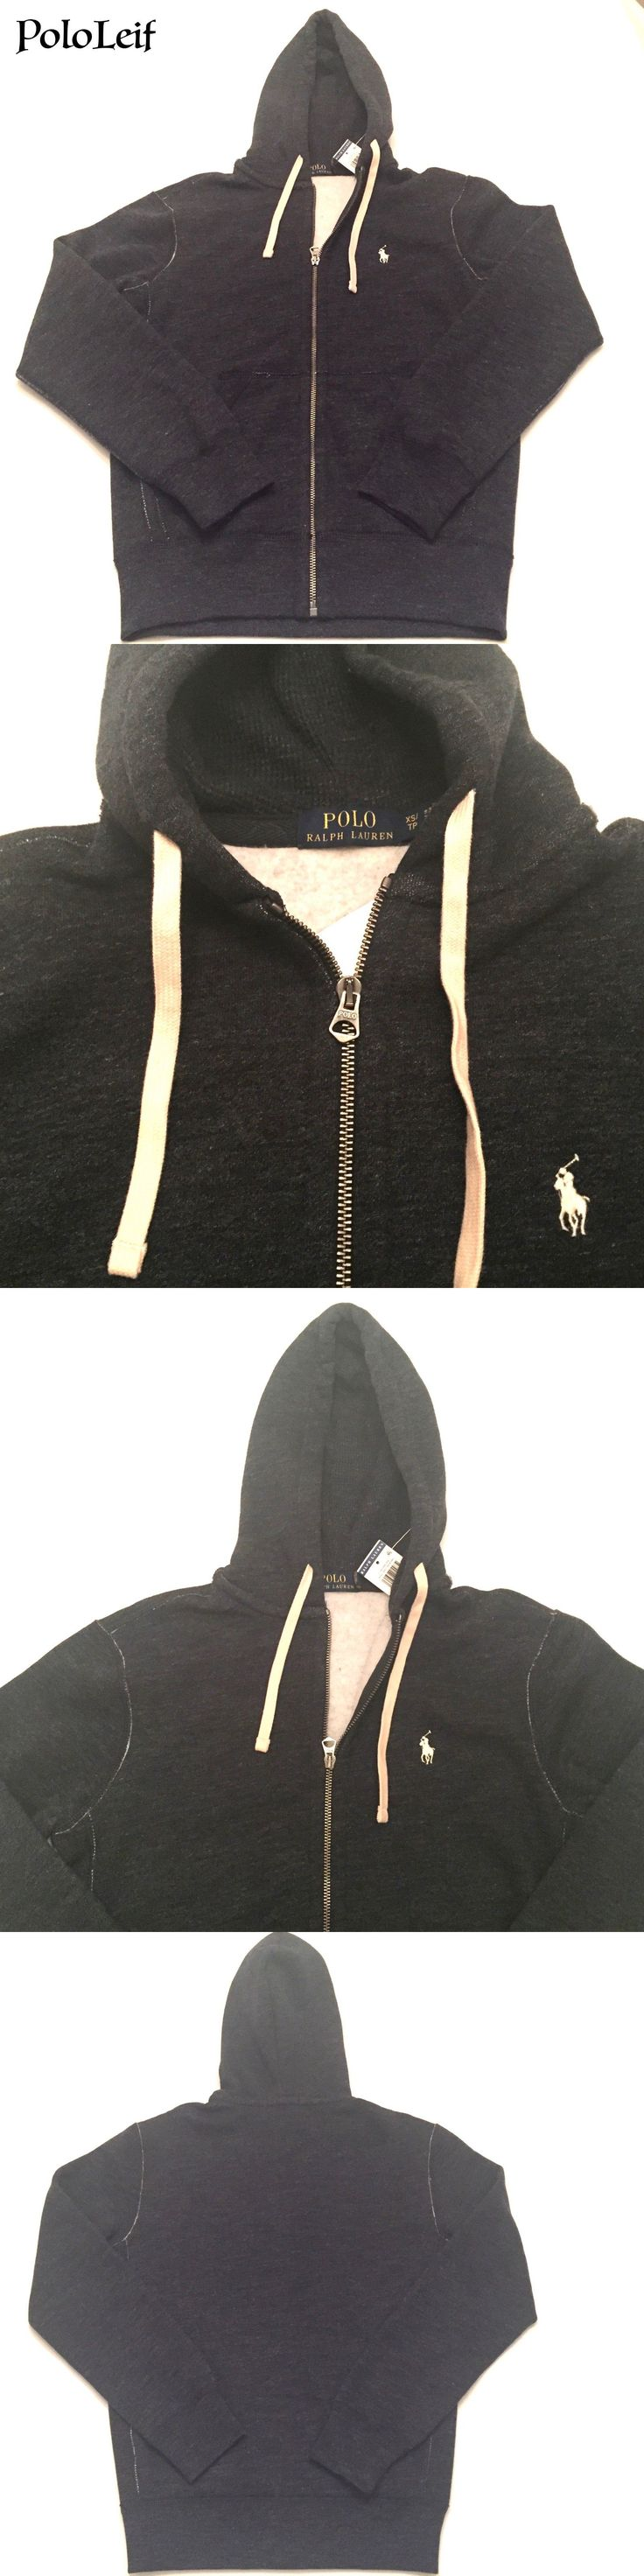 Sweats and Hoodies 155183: Polo Ralph Lauren Mens Zip Pony Hoodie Sweatshirt Jacket Blue Xs, S, M, L, Xl -> BUY IT NOW ONLY: $49.98 on eBay!